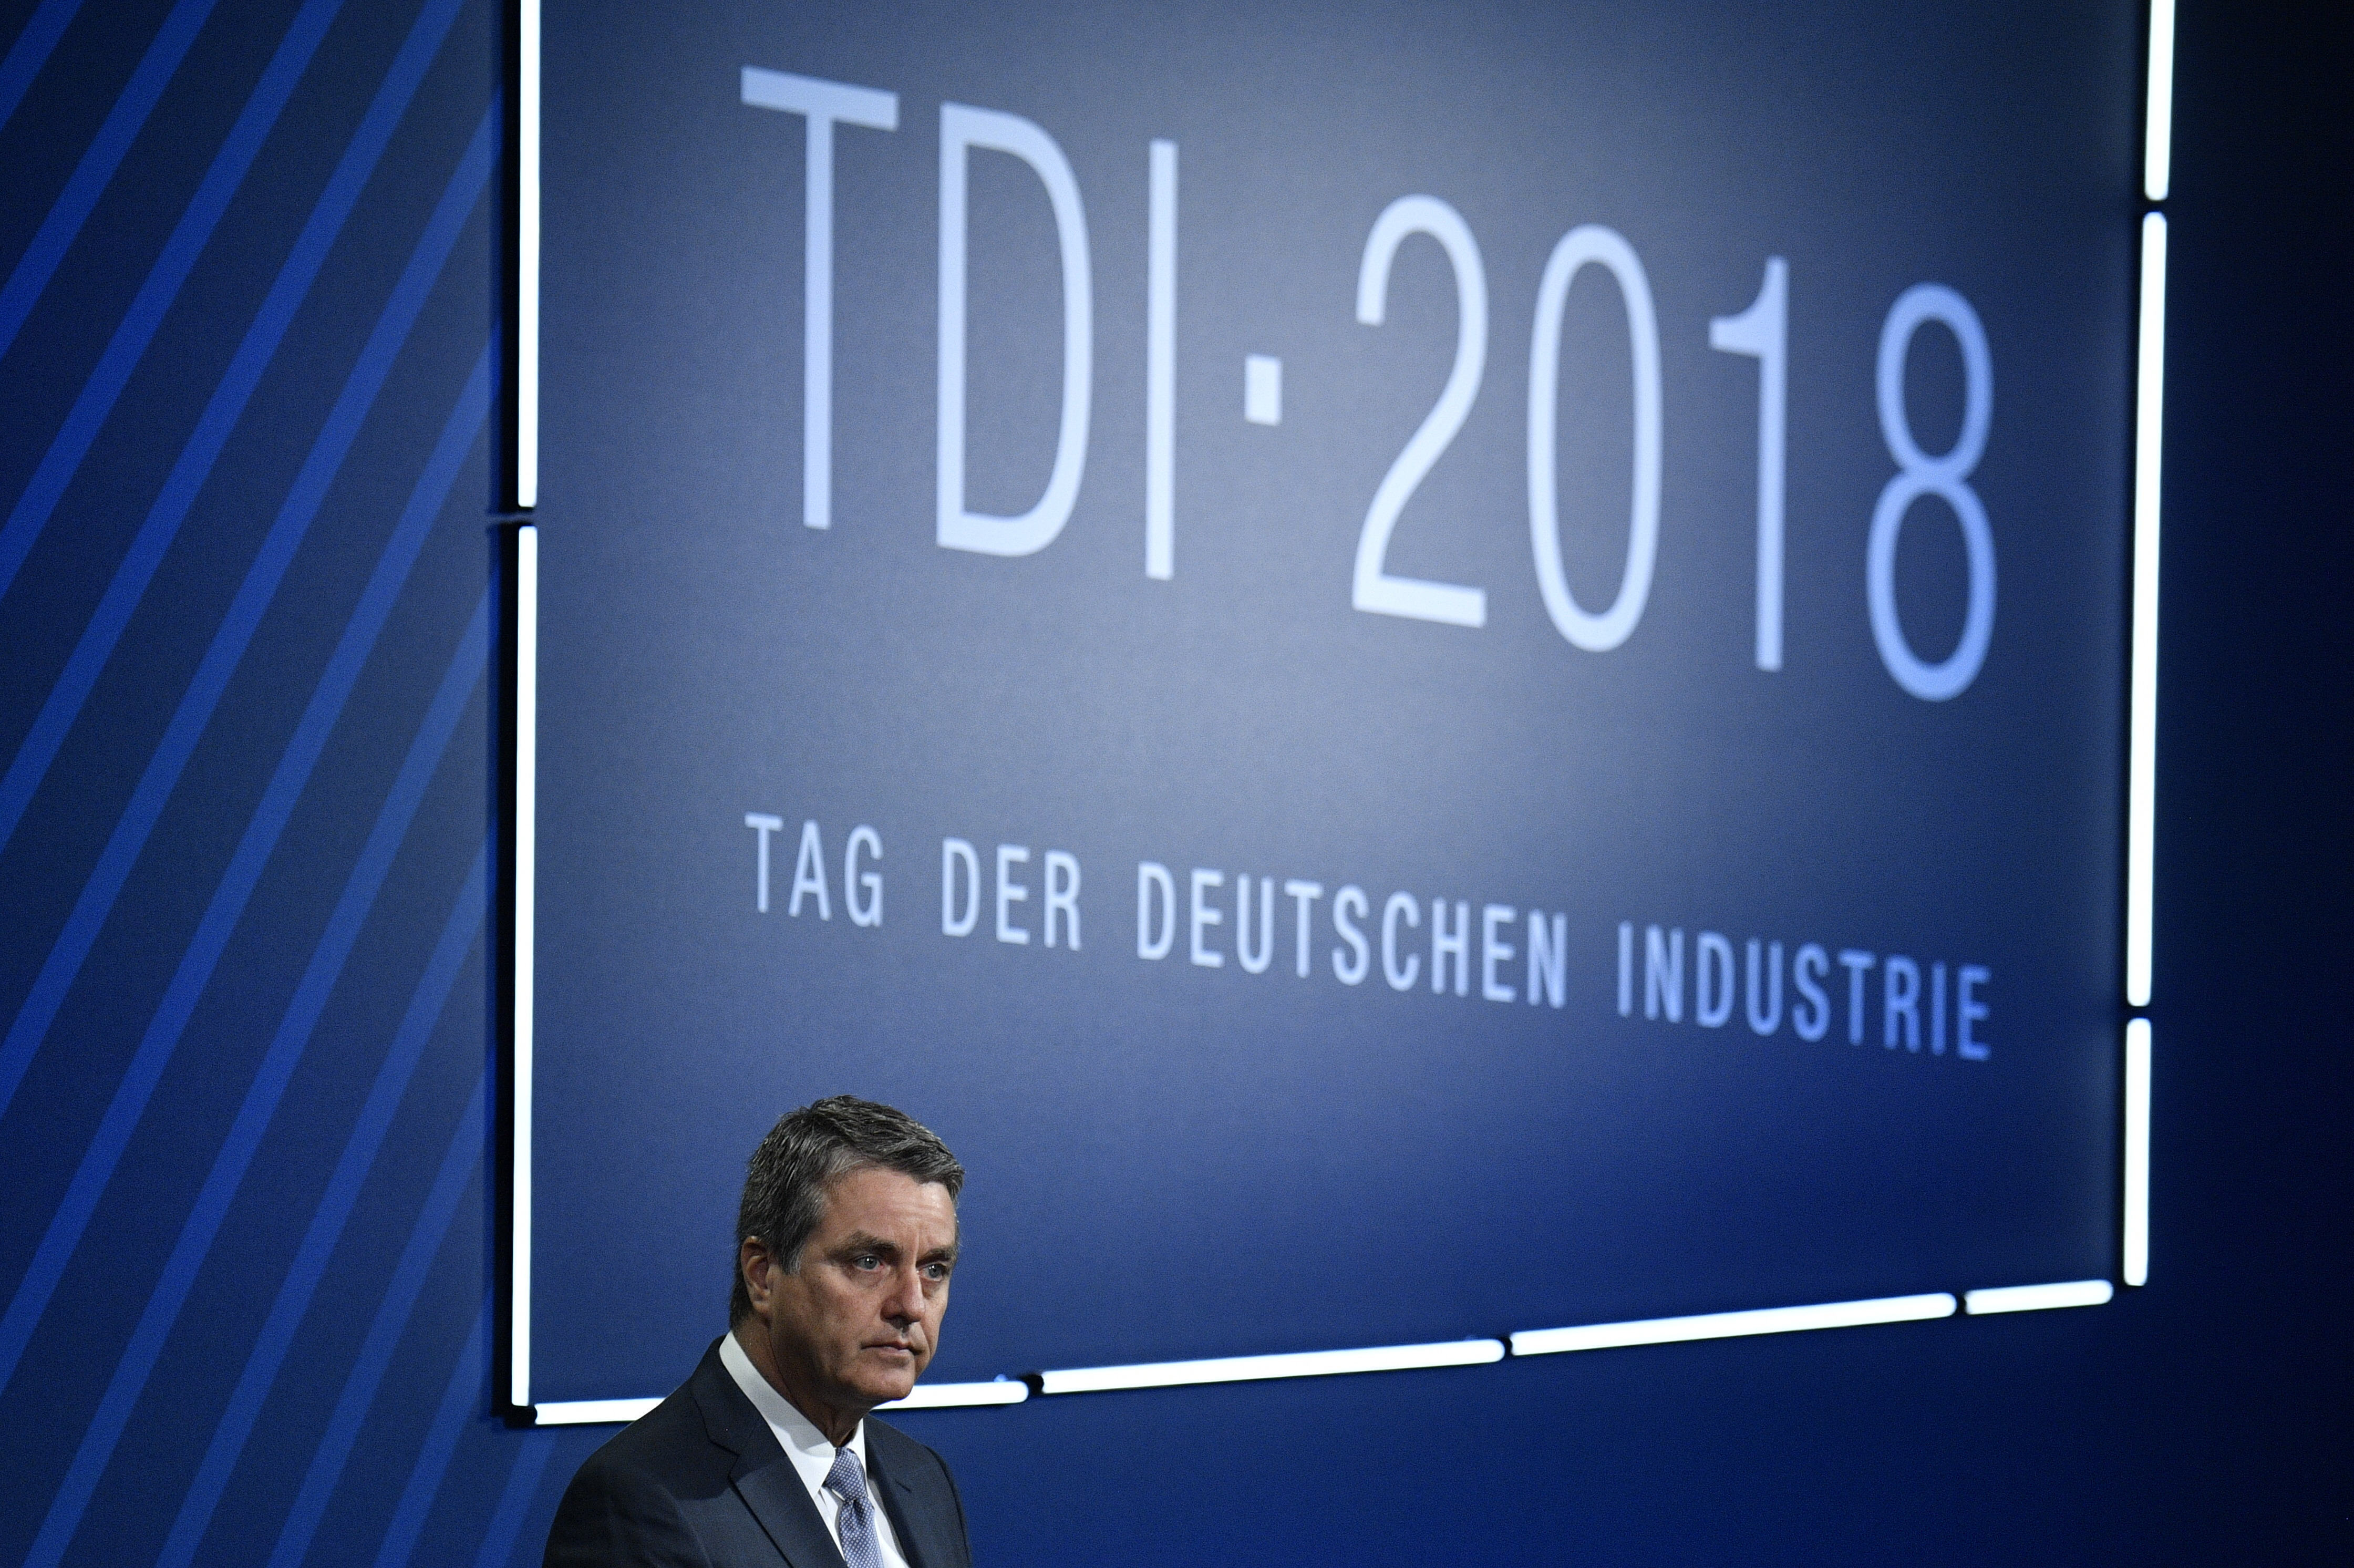 WTO asks Germany to help protect rules-based system of free trade